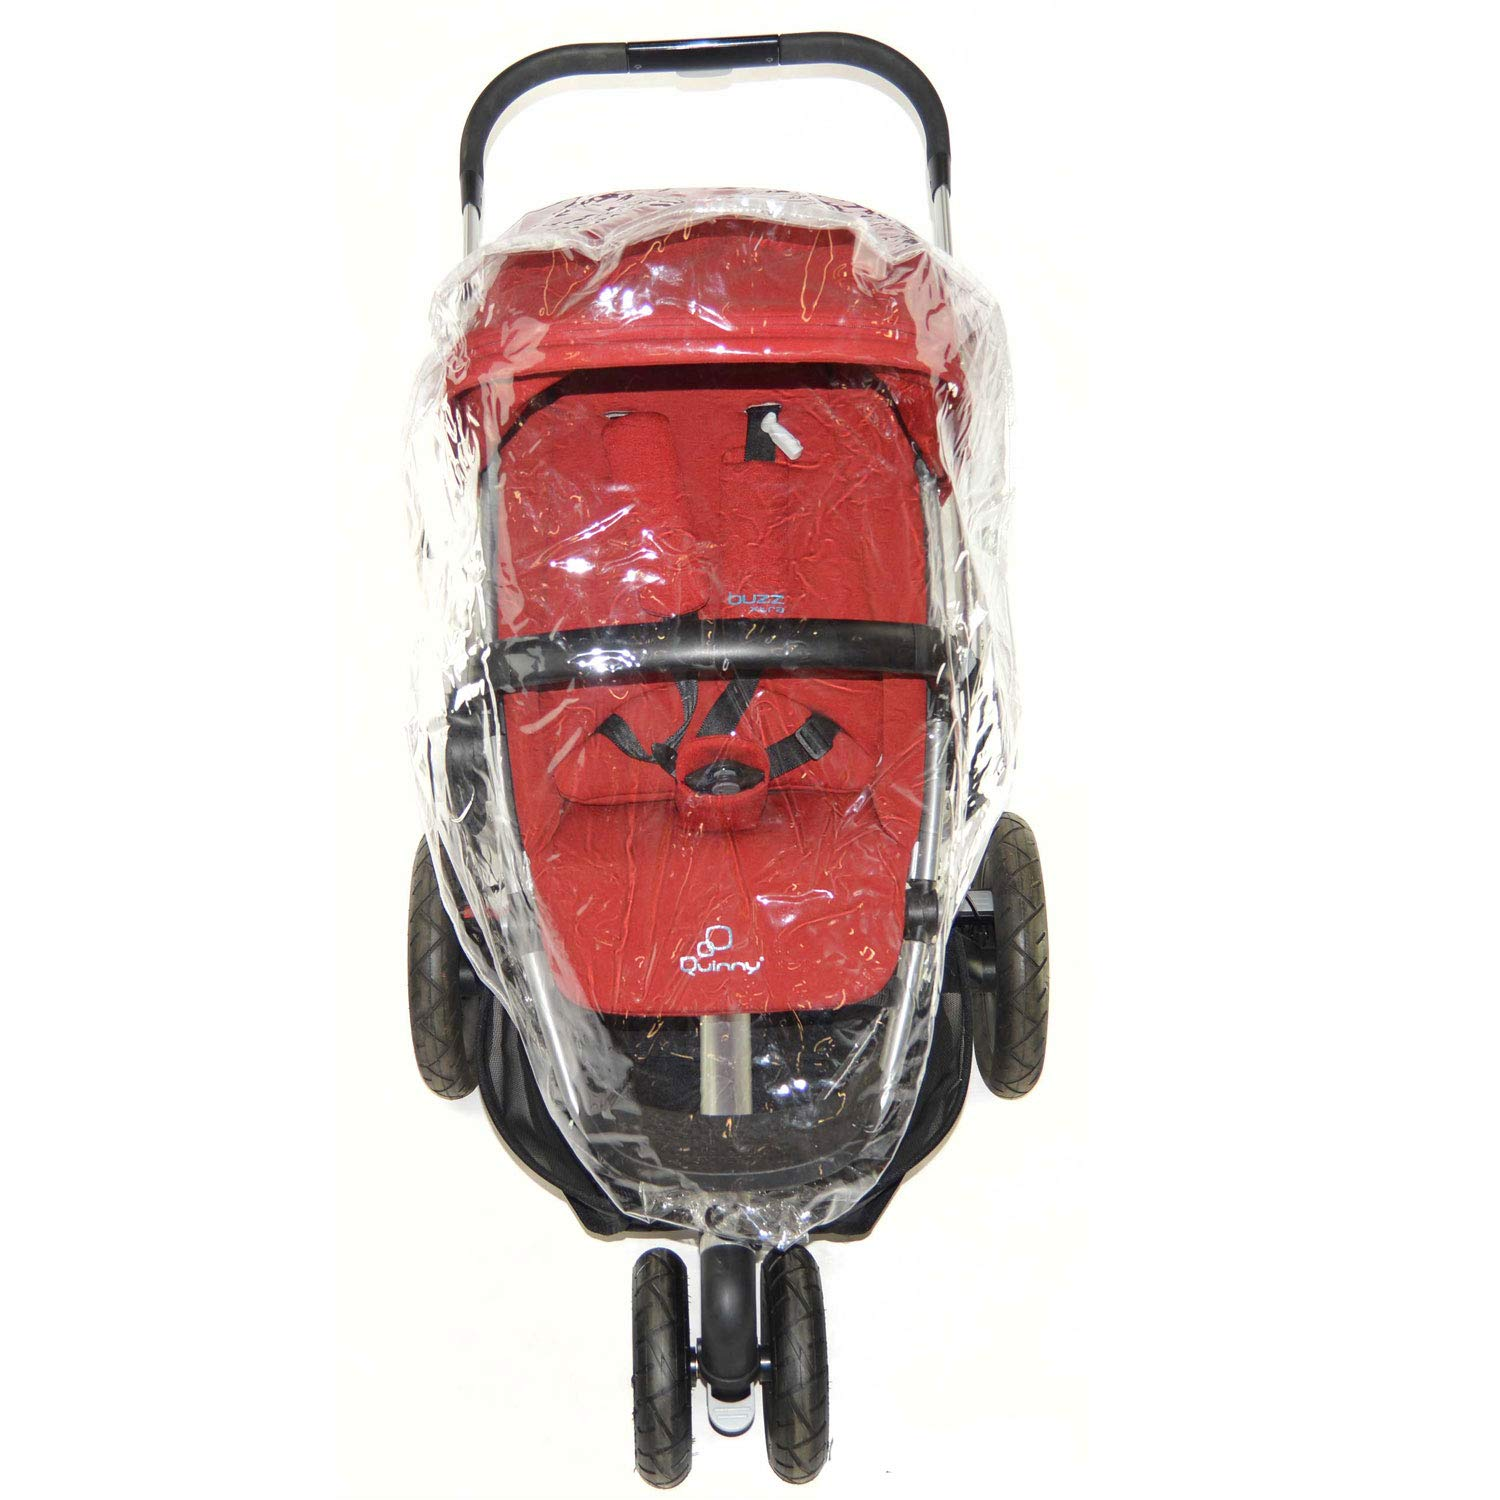 FYLO Pushchair Raincover Compatible with Mothercare Jive Stroller